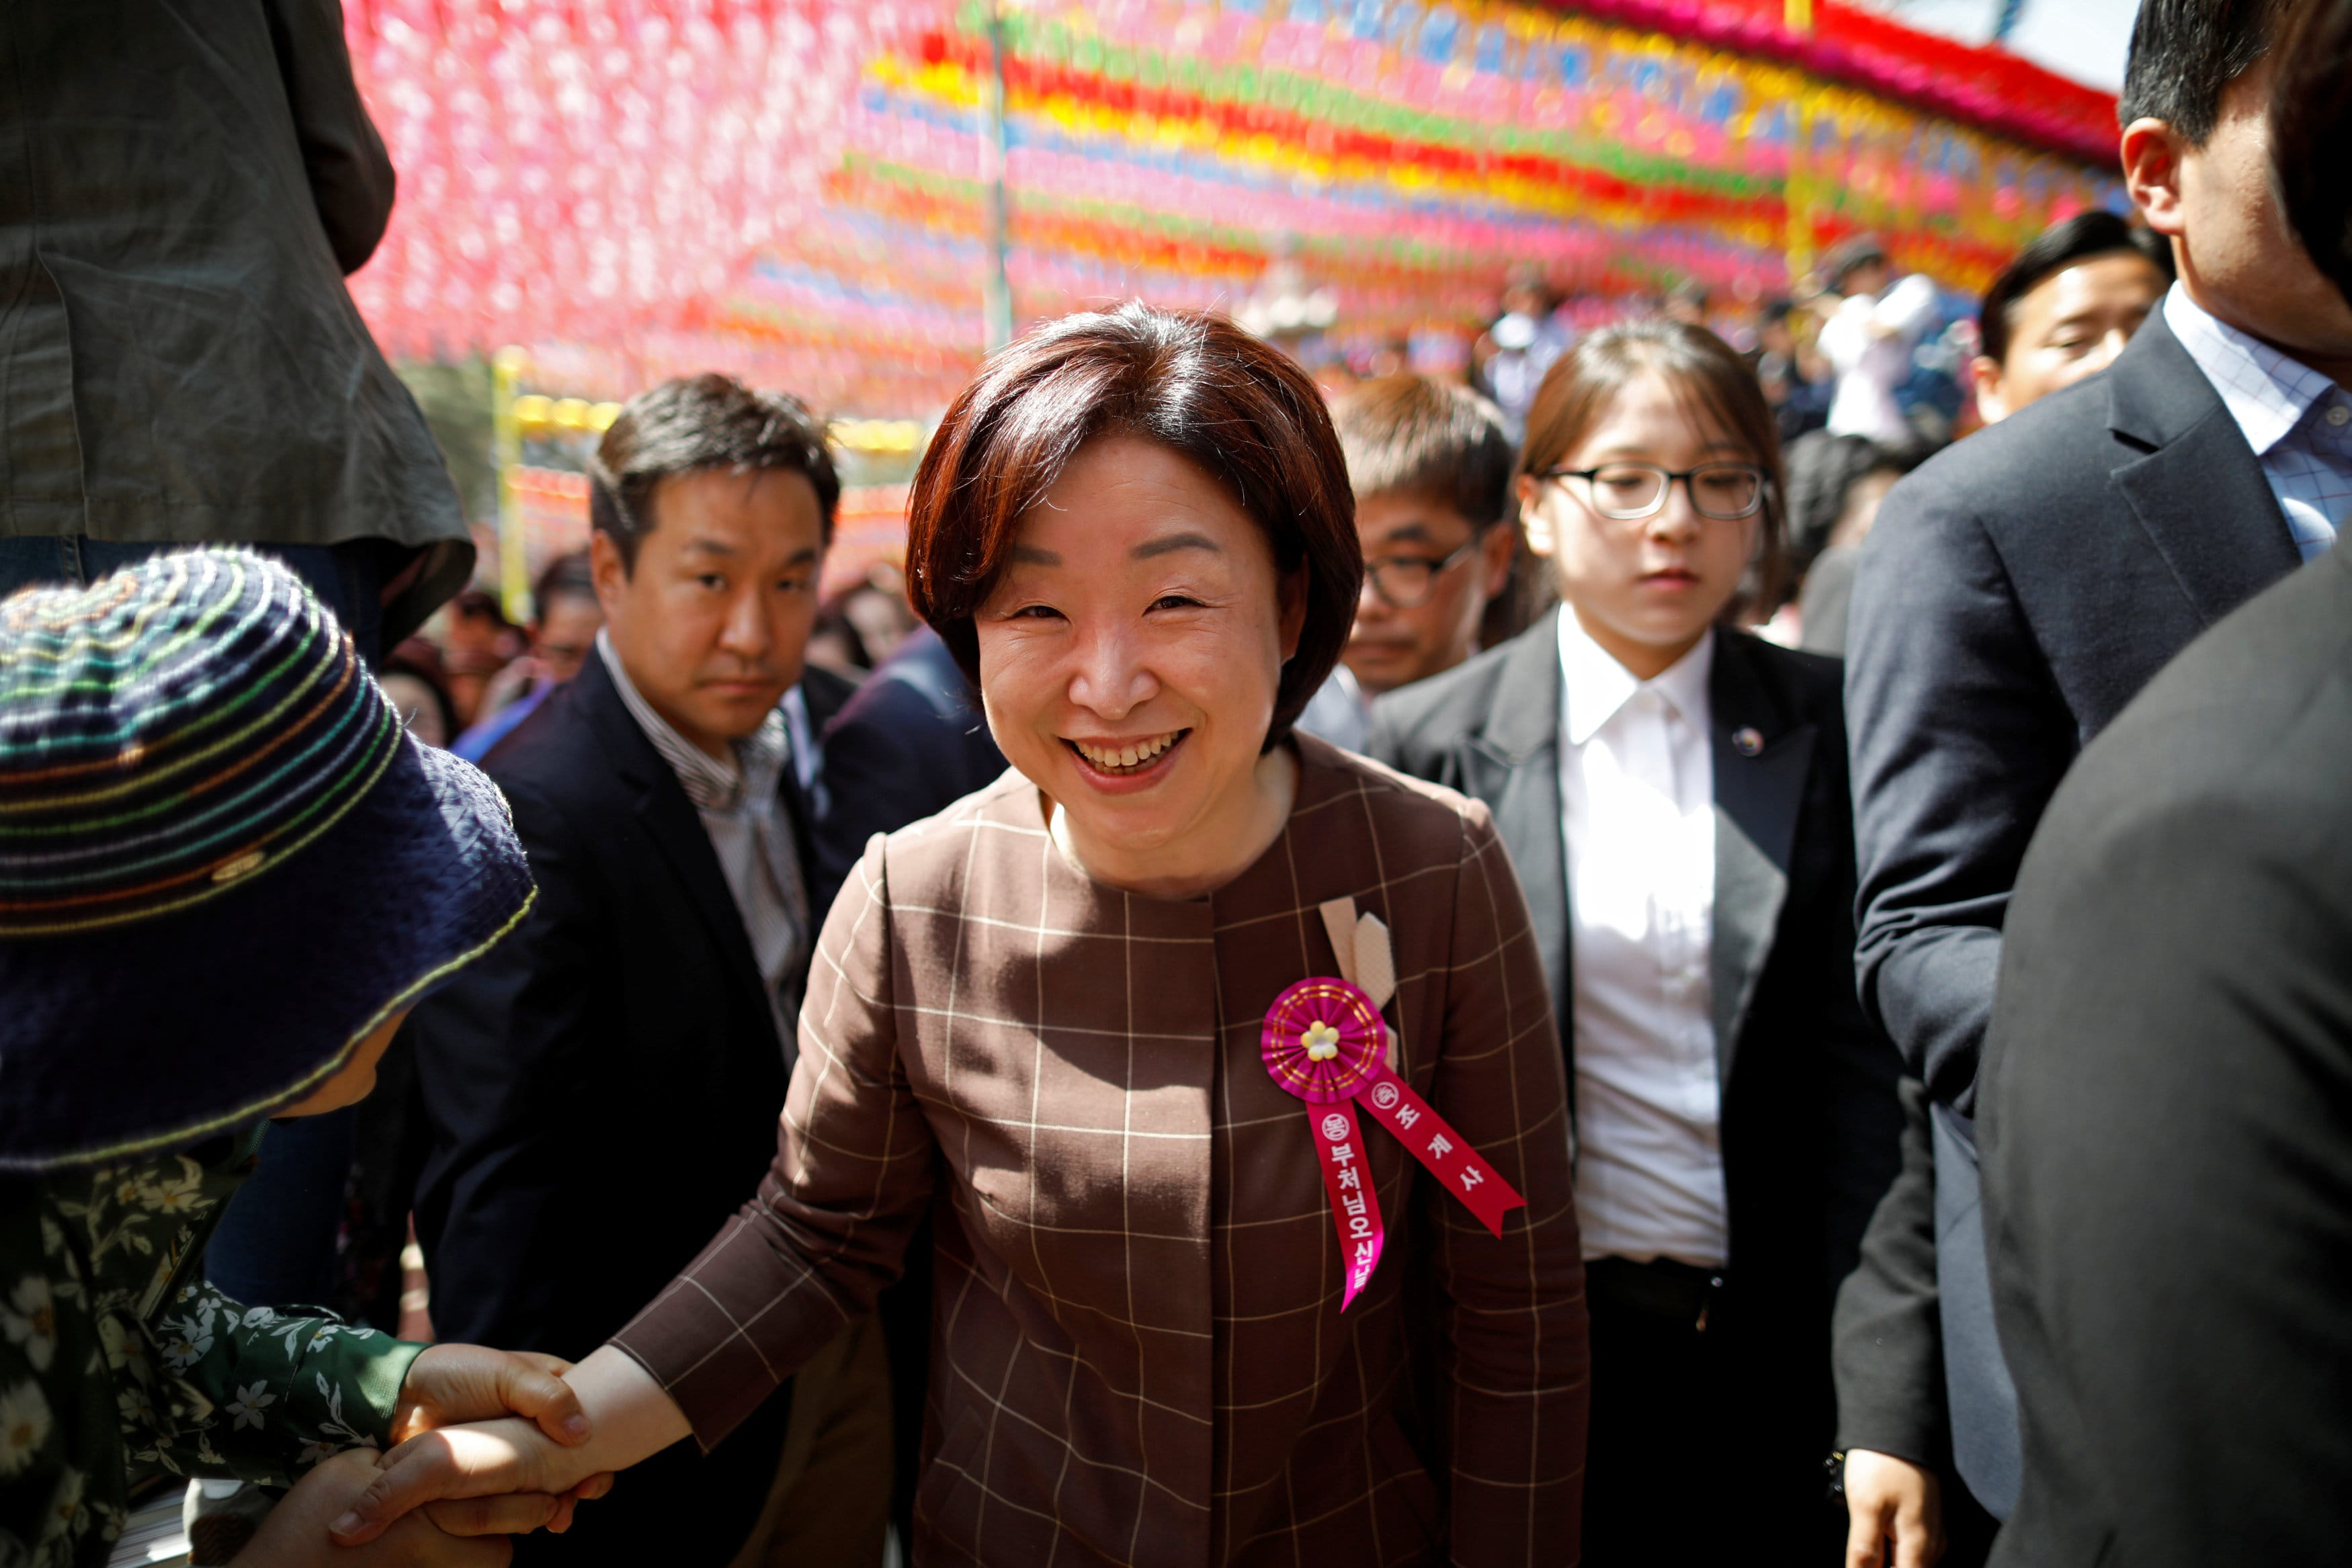 Sim Sang-jung, presidential candidate of the Justice Party, shakes hands with his supporters after attending a ceremony celebrating the birthday of Buddha at Jogye temple in Seoul, South Korea, May 3, 2017. Credit: Reuters/Kim Hong-Ji